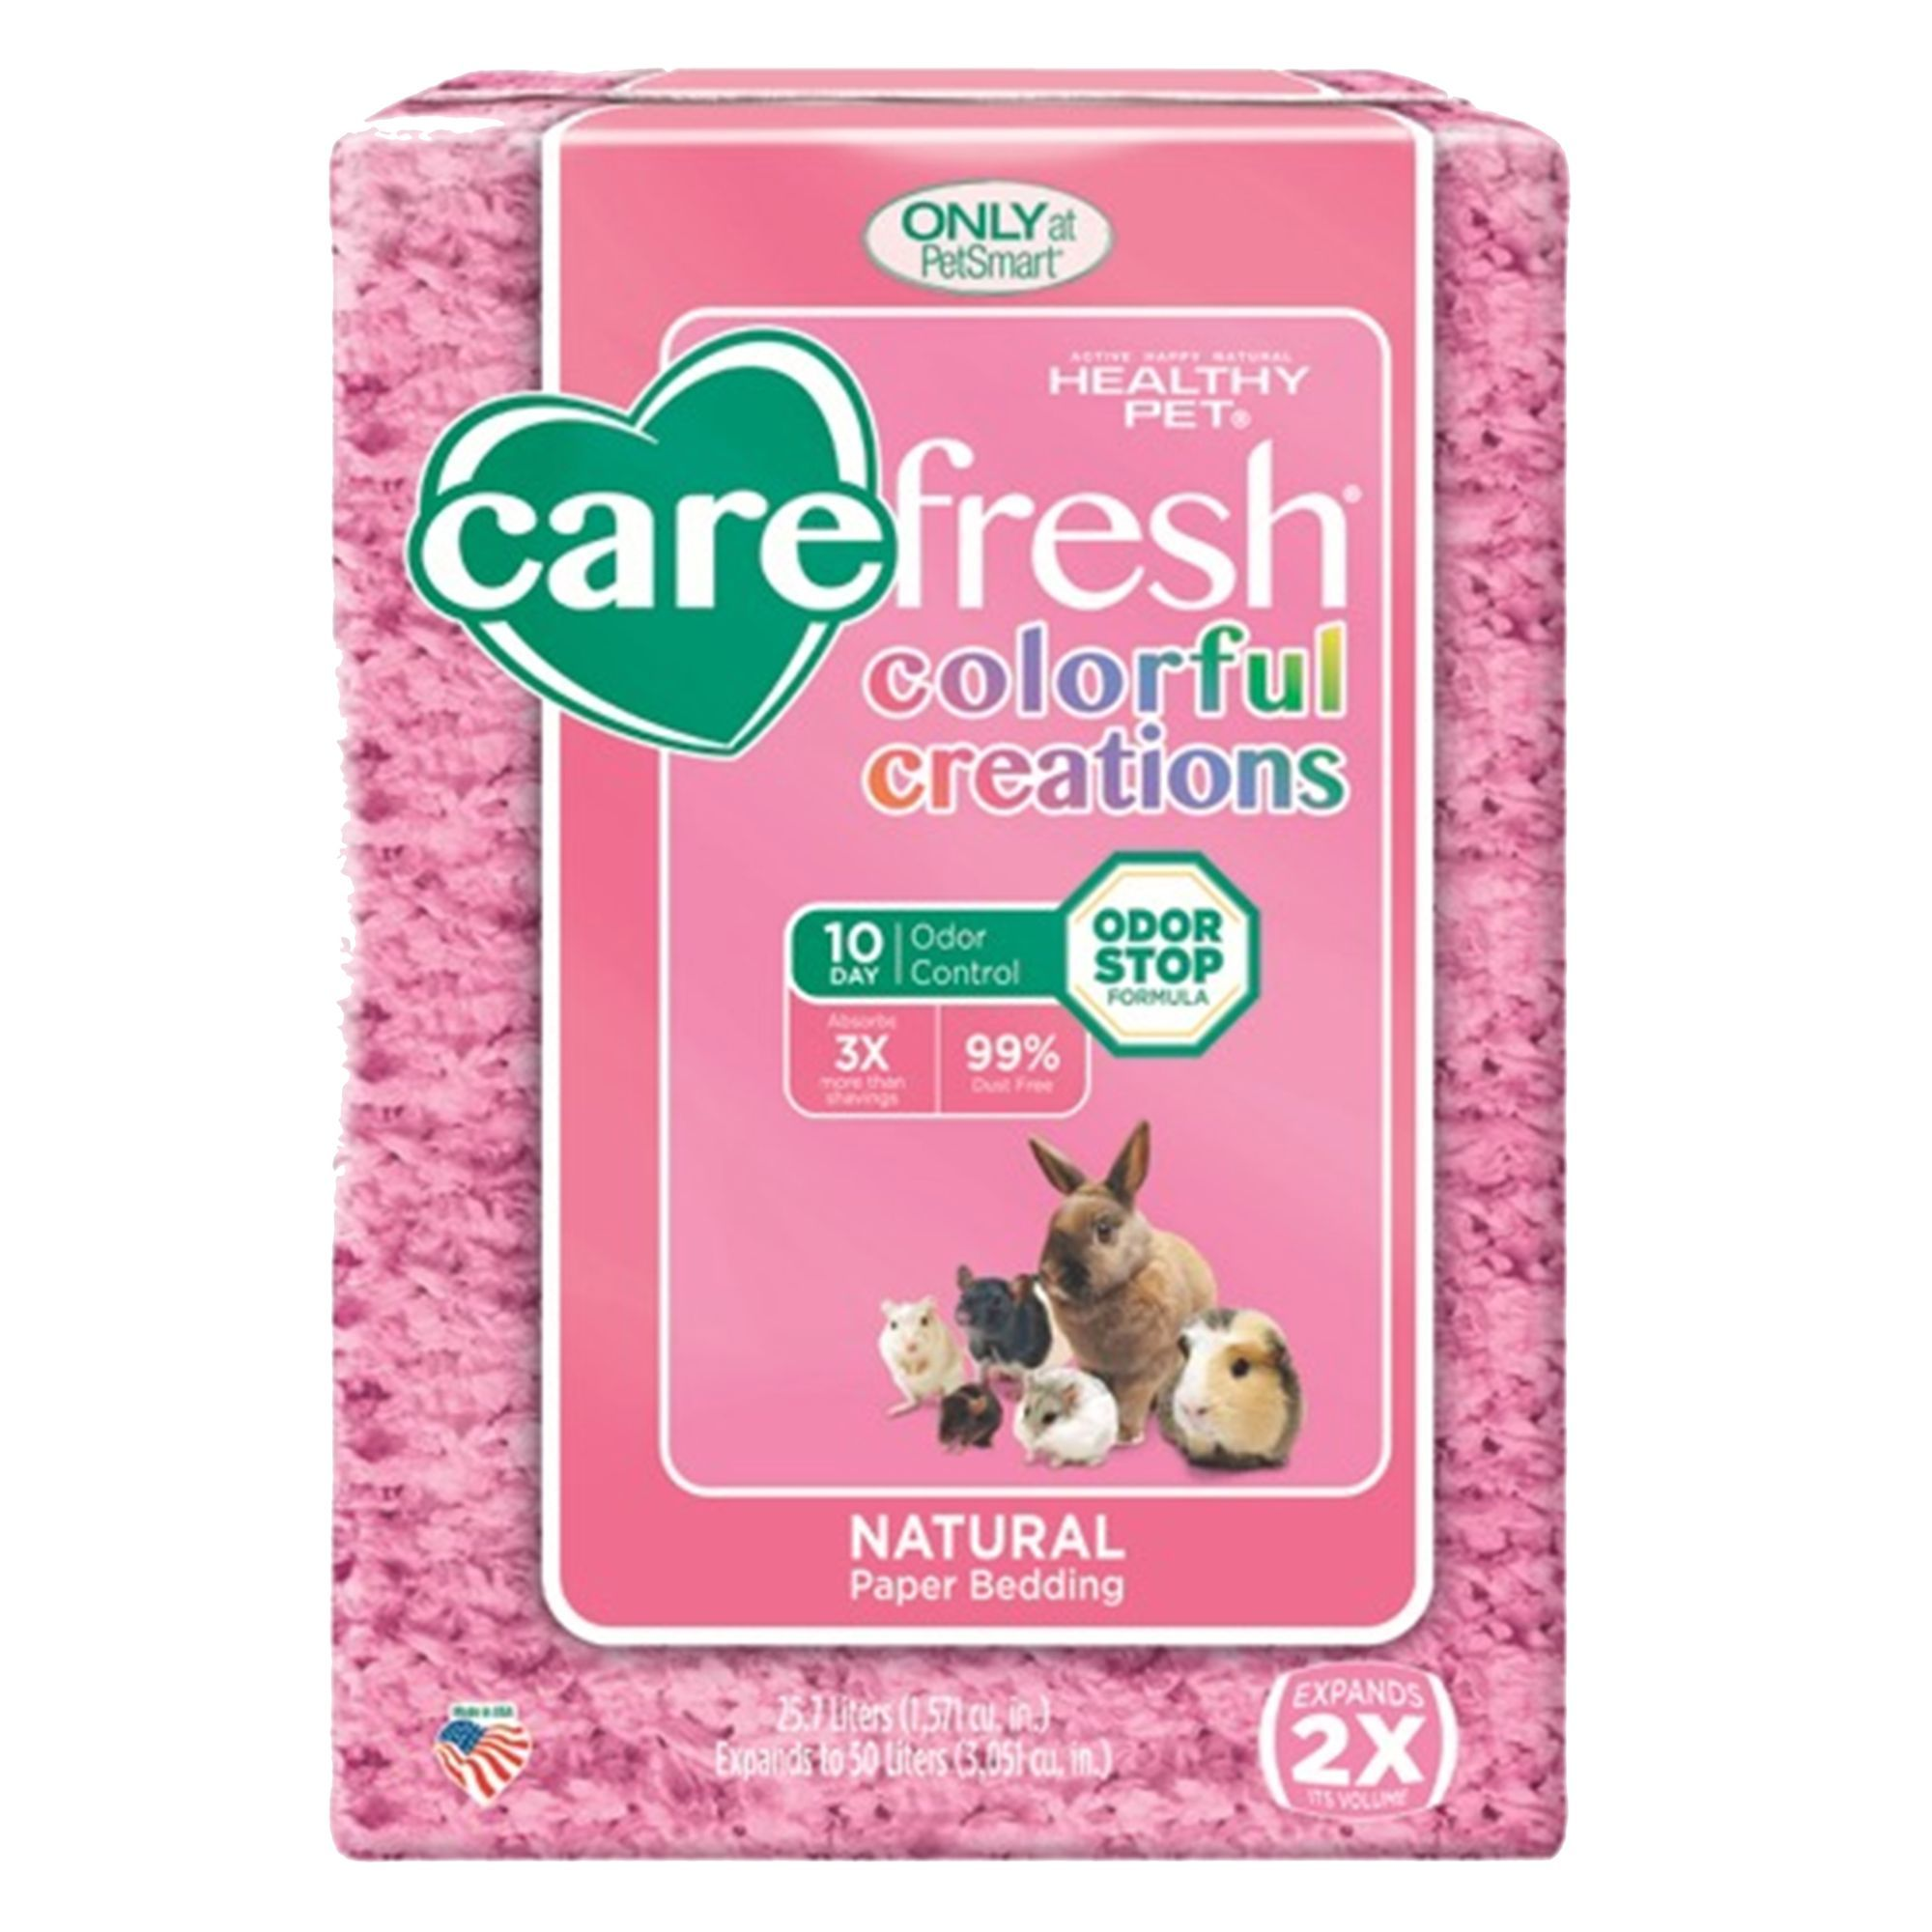 carefresh Colorful Creations Small Pet Bedding size 50 L